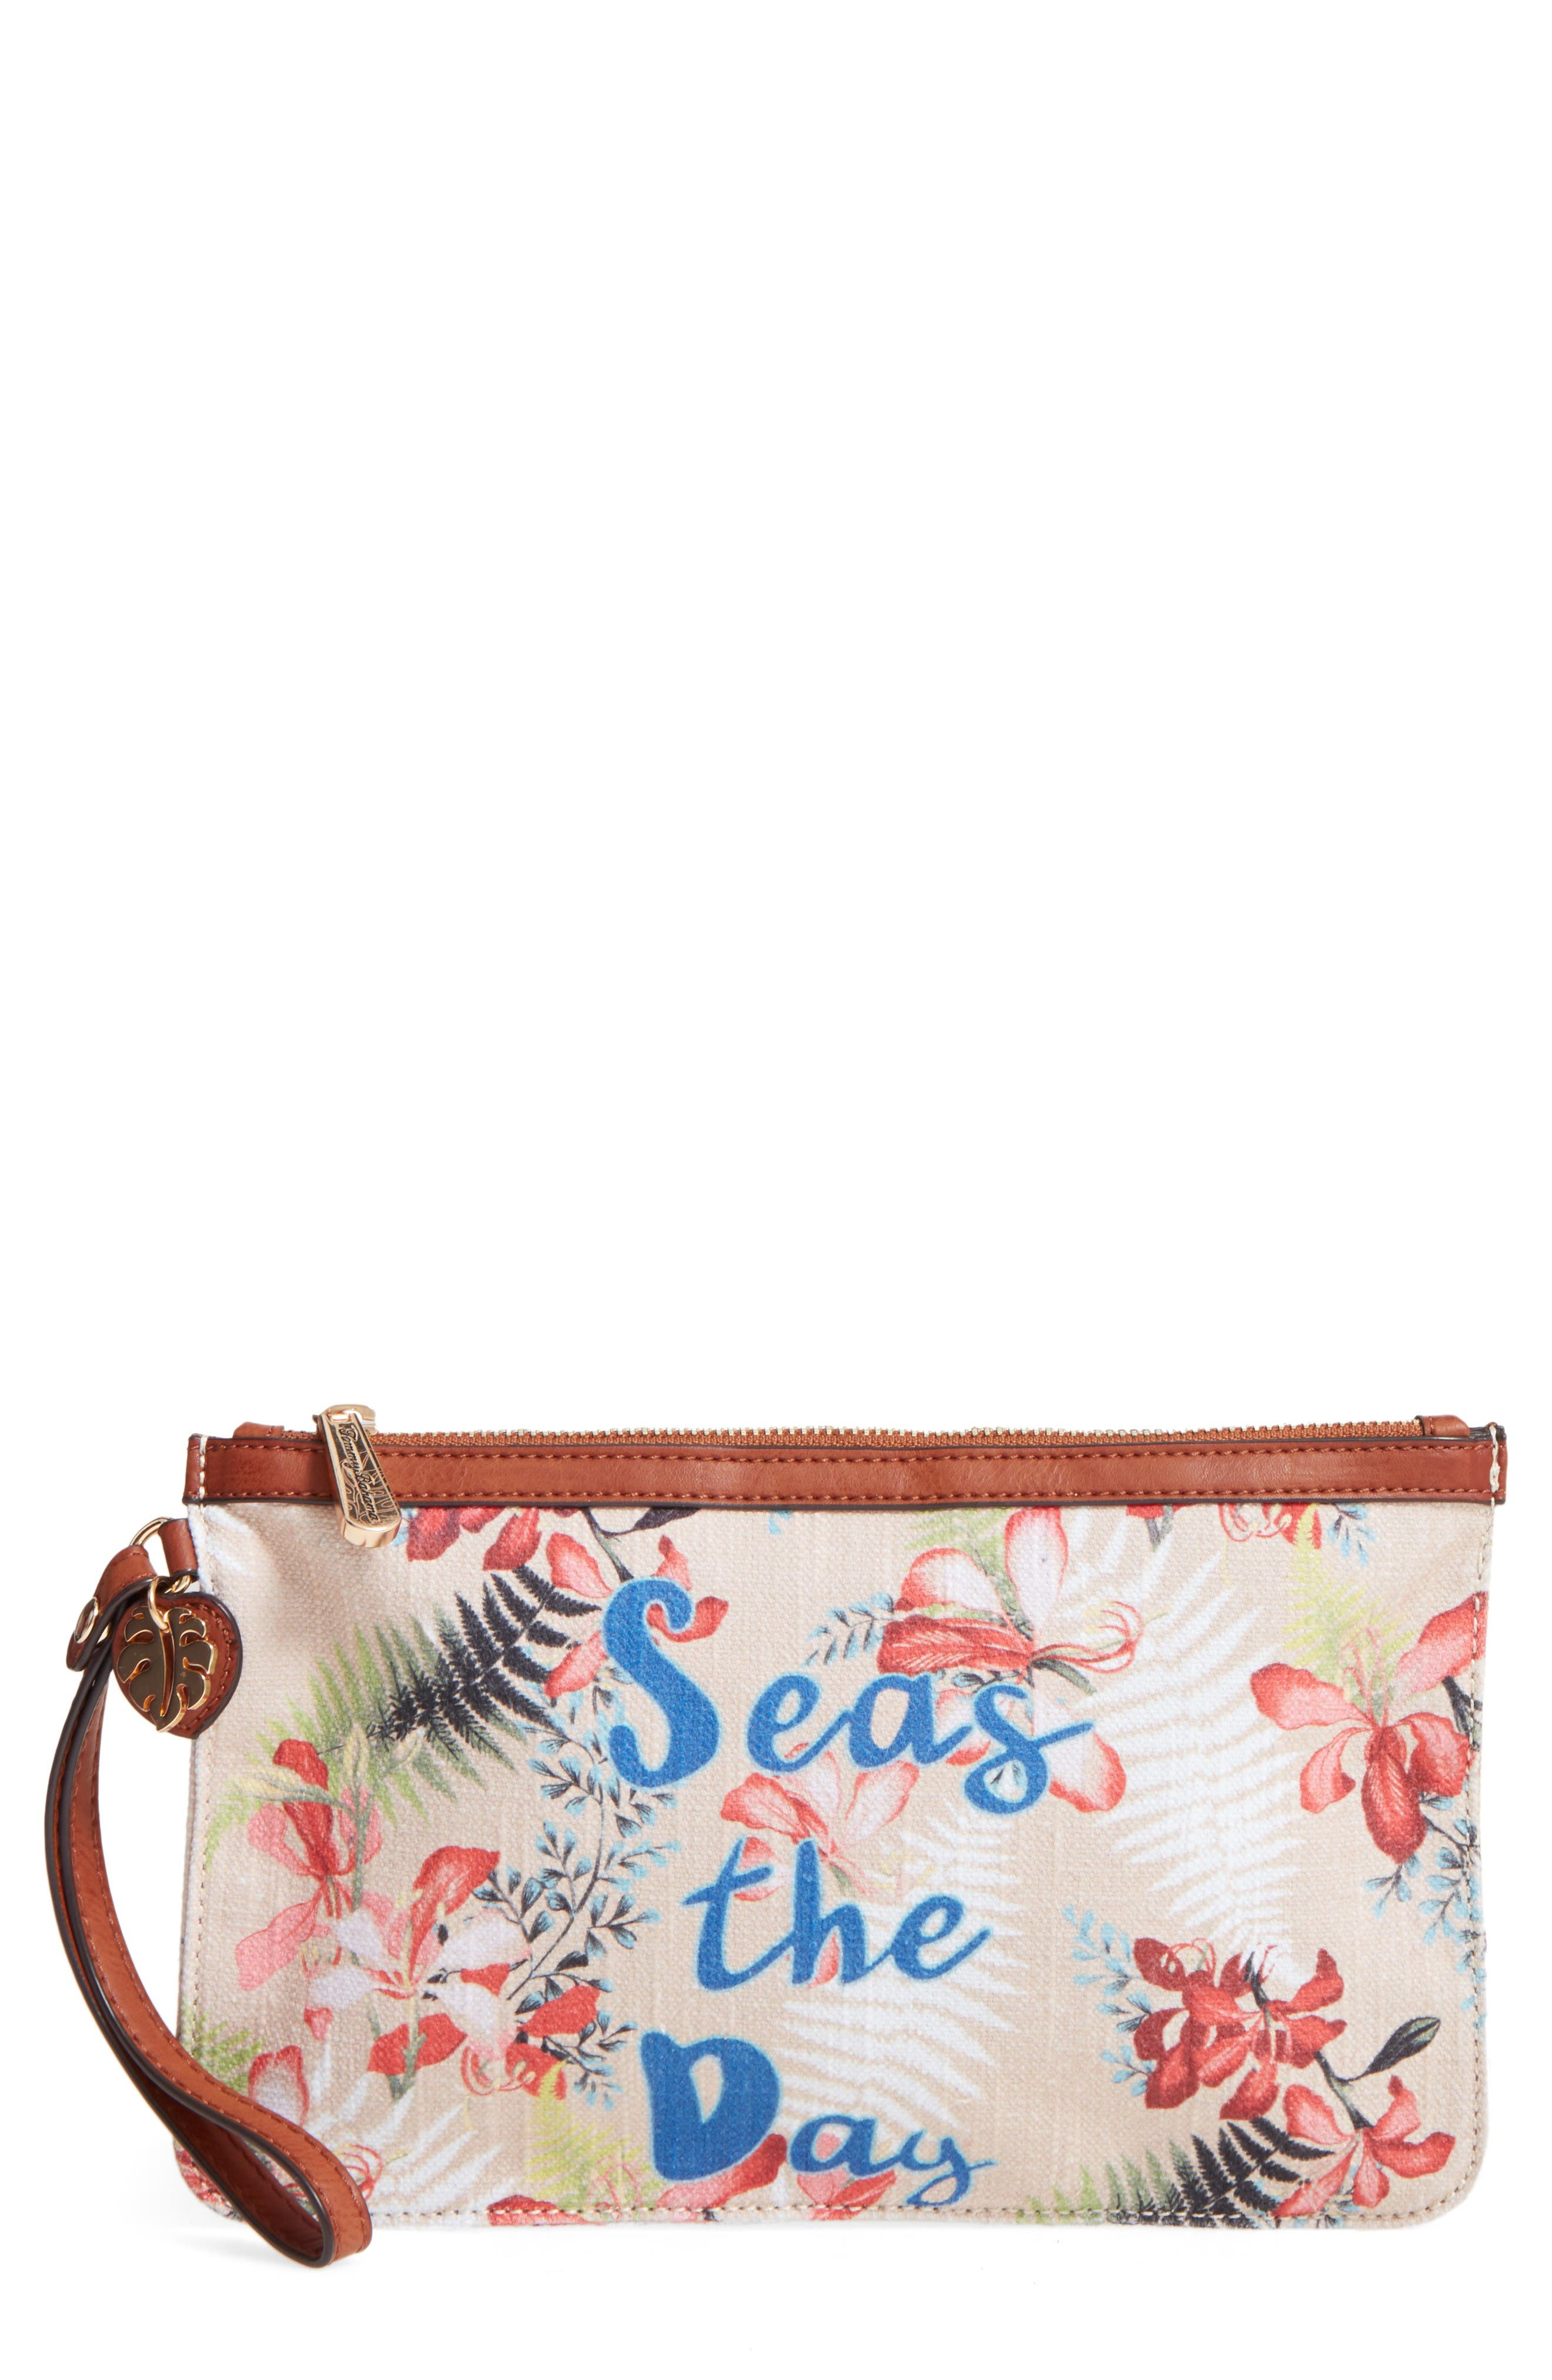 Alternate Image 1 Selected - Tommy Bahama Boca Chica Beach Wristlet